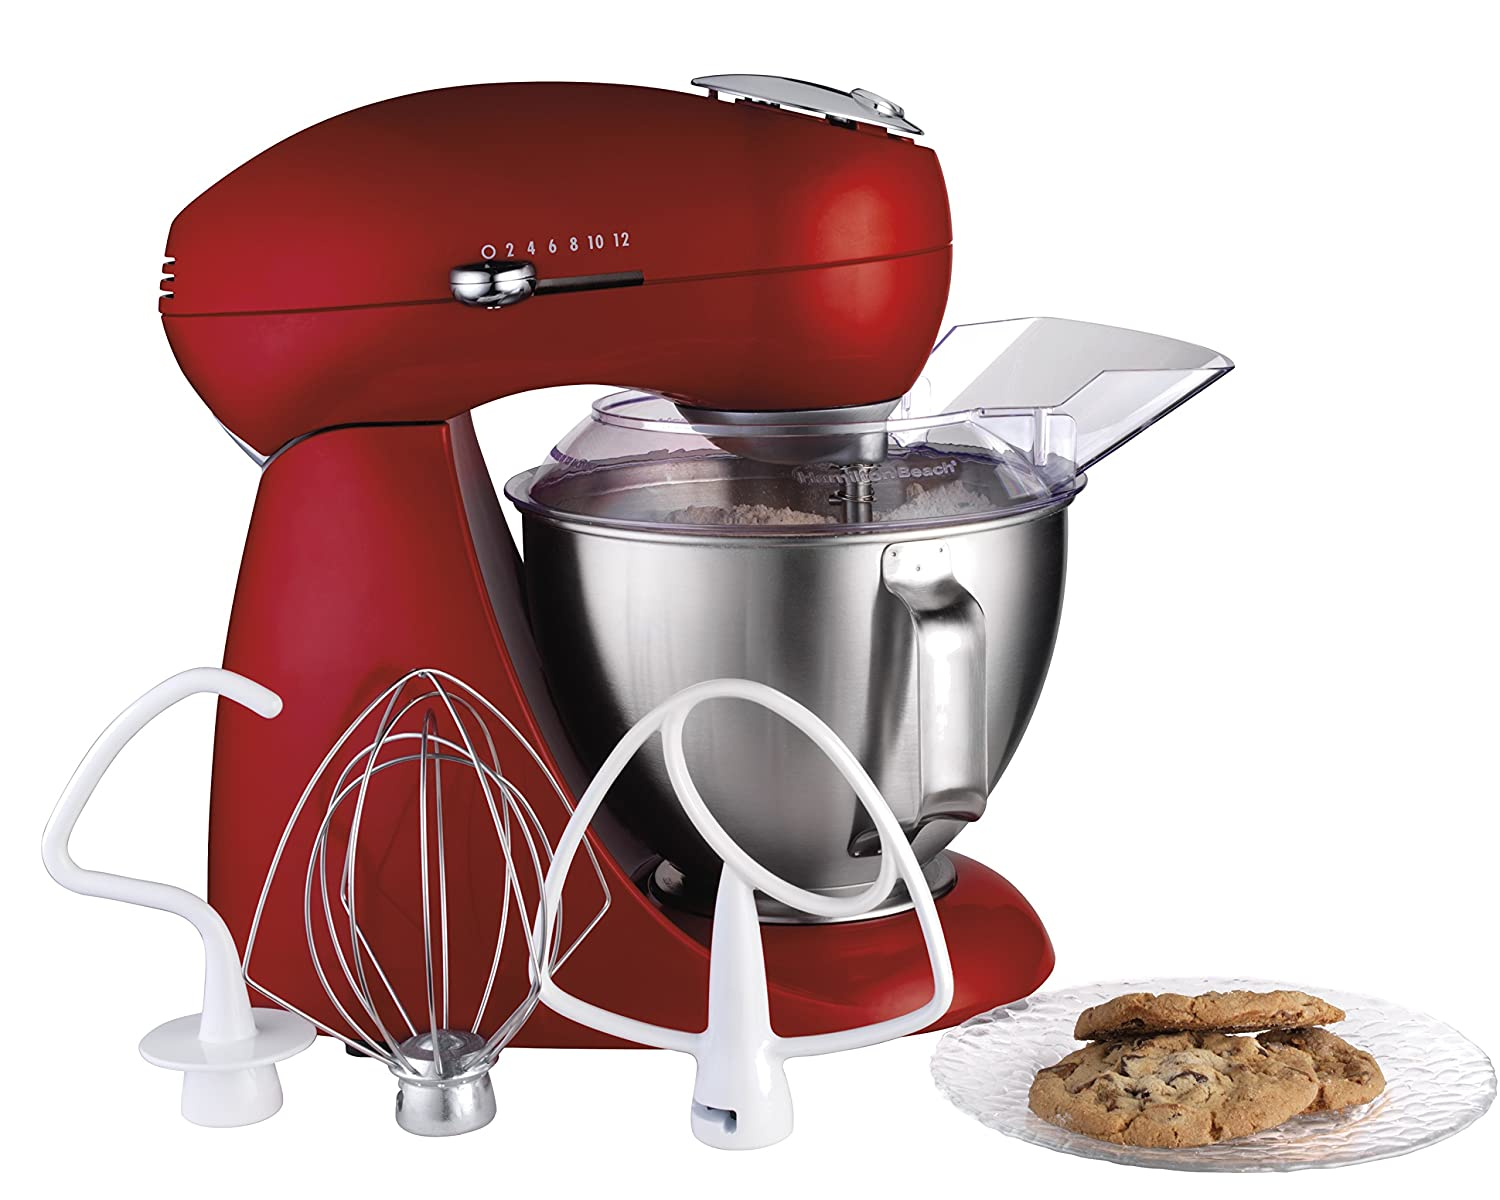 Quilted Kitchen Appliance Covers Amazoncom Hamilton Beach 63232 Eclectrics All Metal Stand Mixer